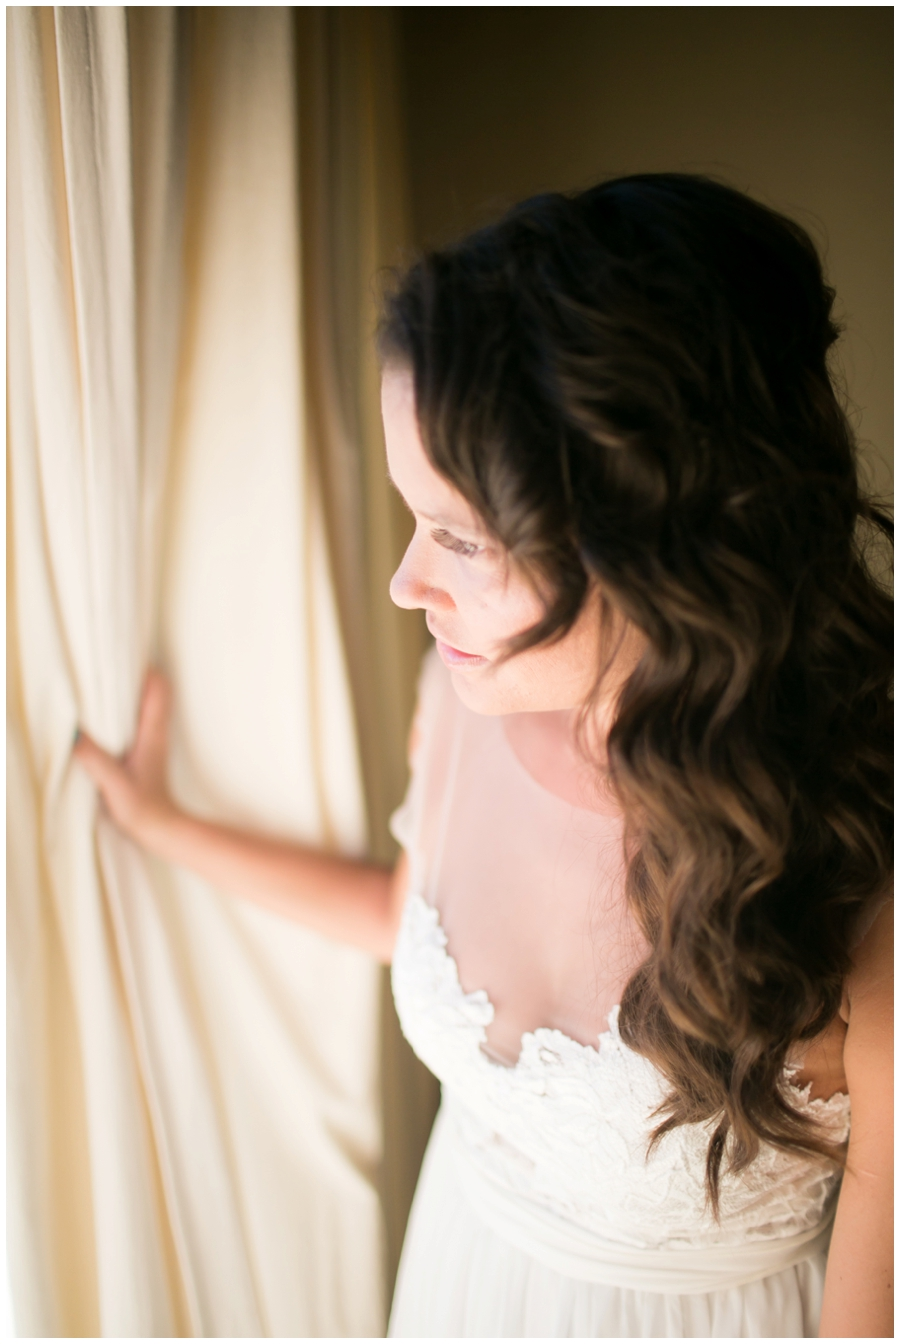 Ariane Moshayedi Photography - Wedding Photographer Orange County Newport Beach_0147.jpg